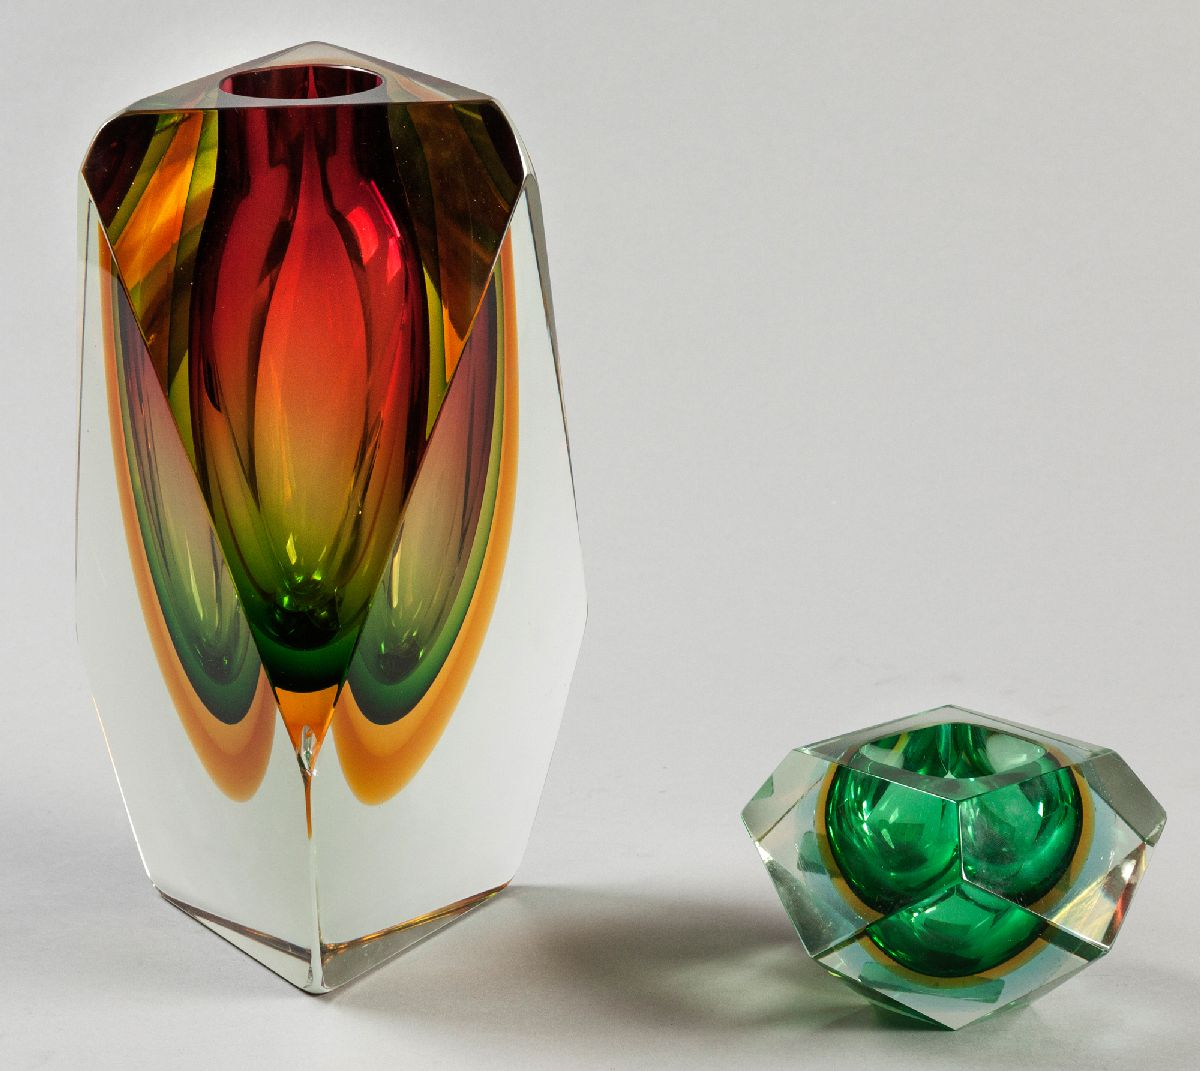 Lot 55 - A MURANO GLASS SOMMERSO VASE, the organic-form vase in amber, green, yellow and pink colours, 27.5cm